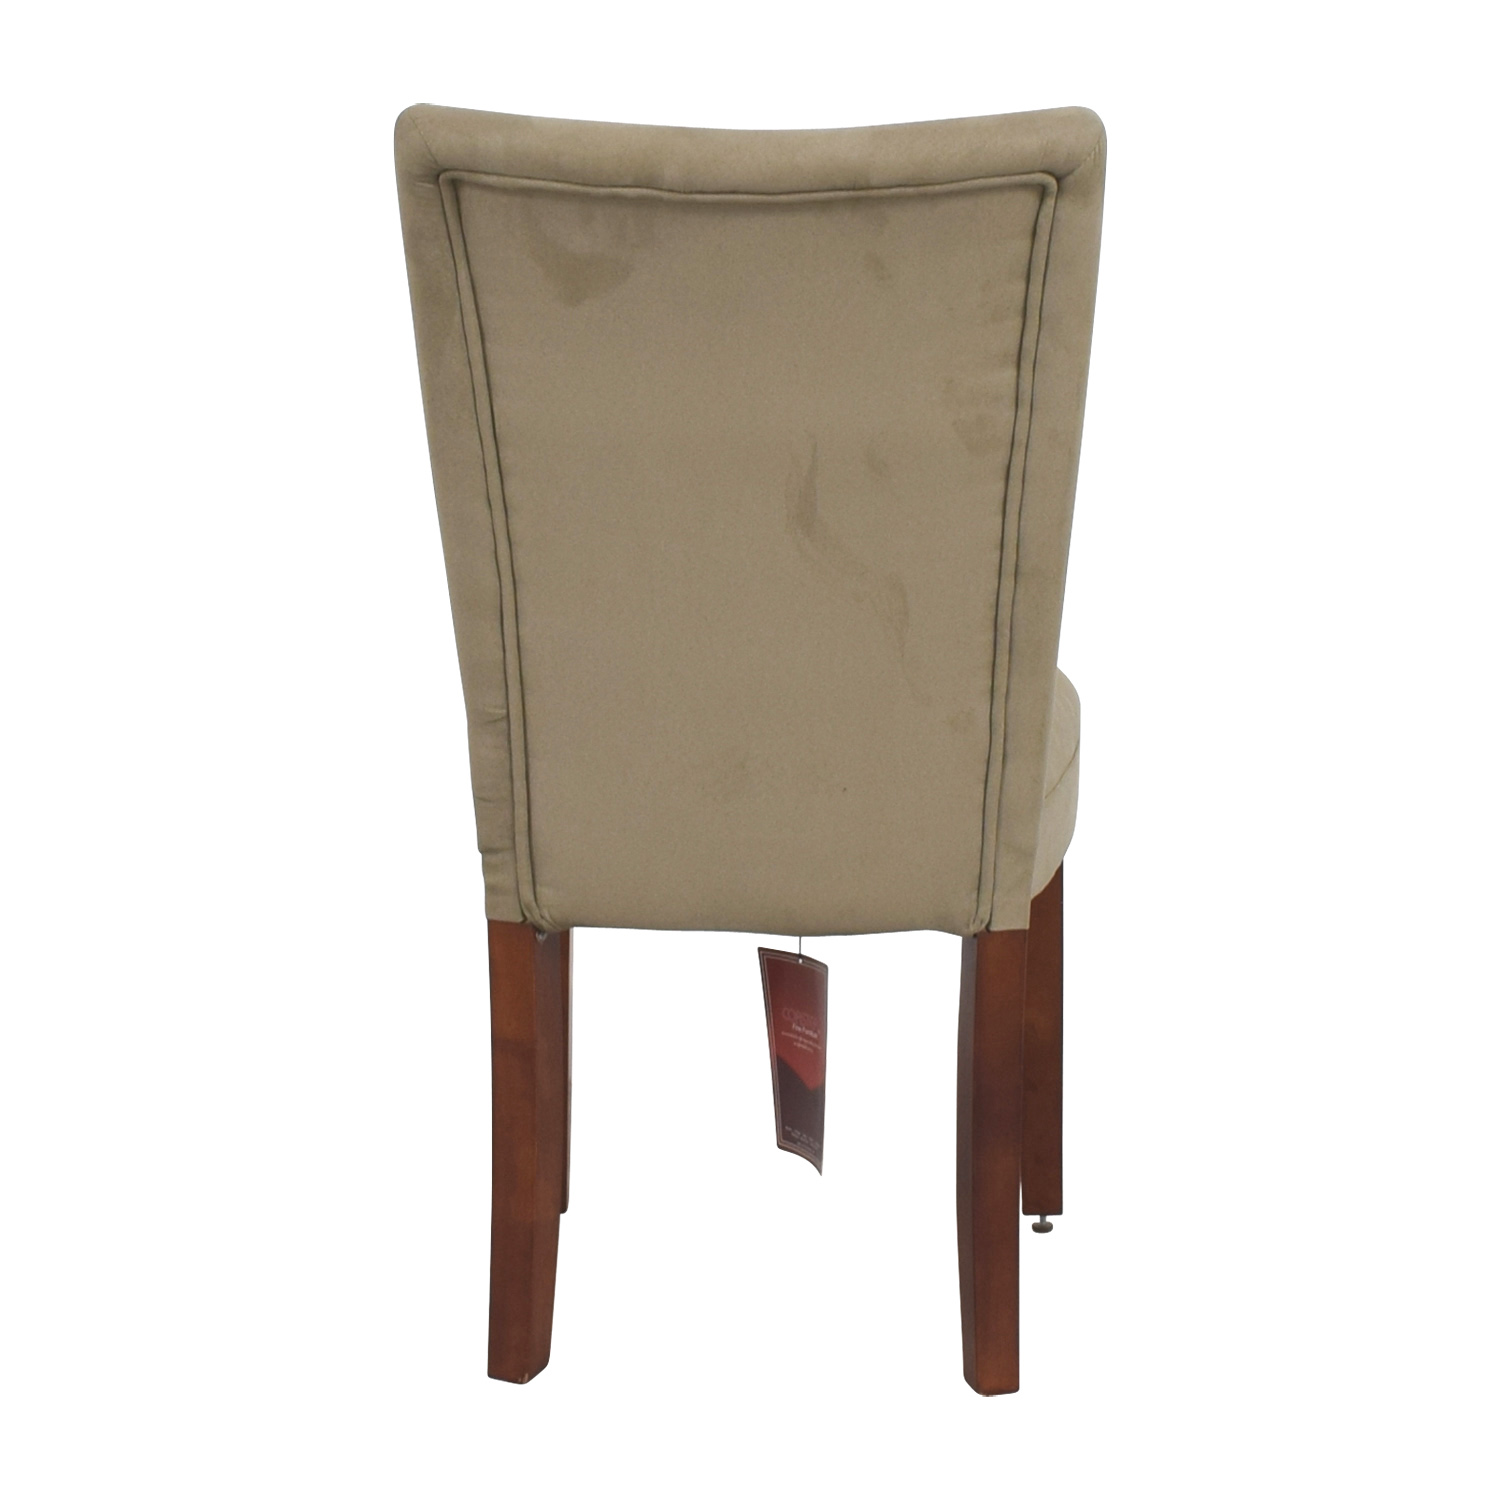 Coaster Coaster High Back Parsons Chair in Taupe Microfiber Fabric coupon